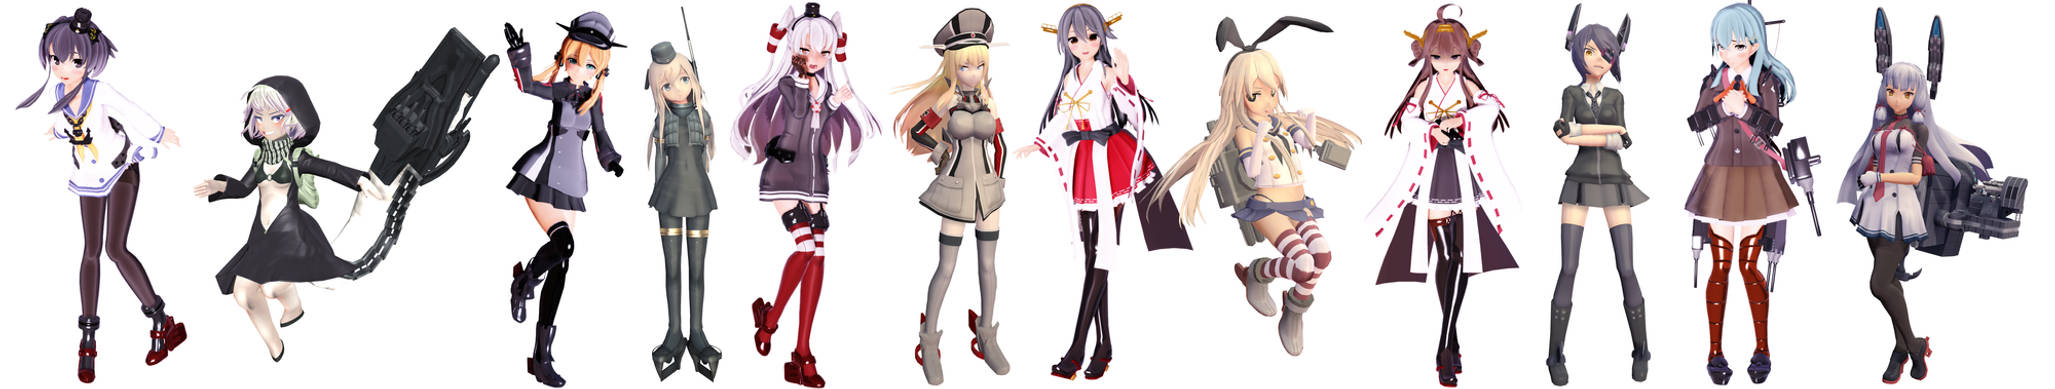 MMD Kancolle poses collab